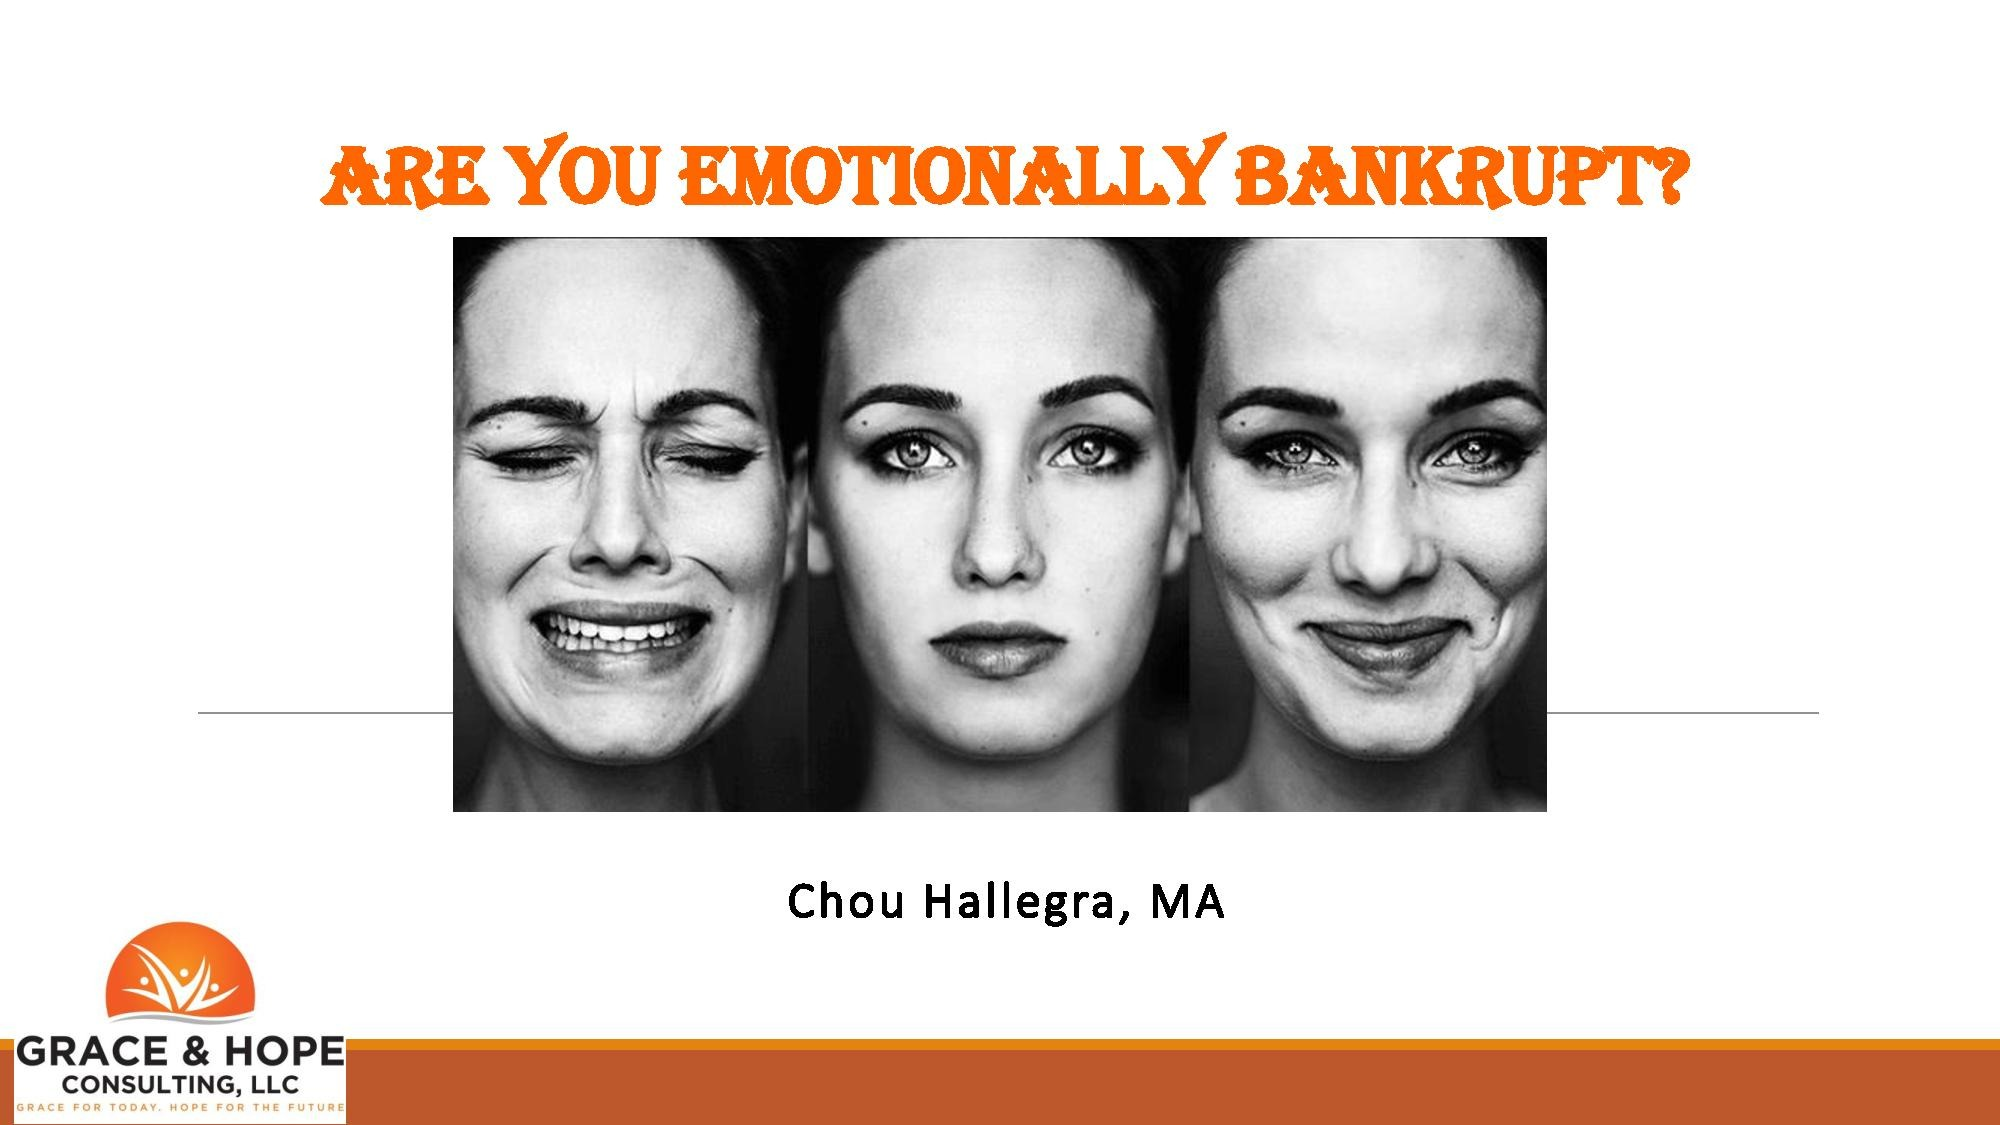 How to Avoid Emotional Bankruptcy